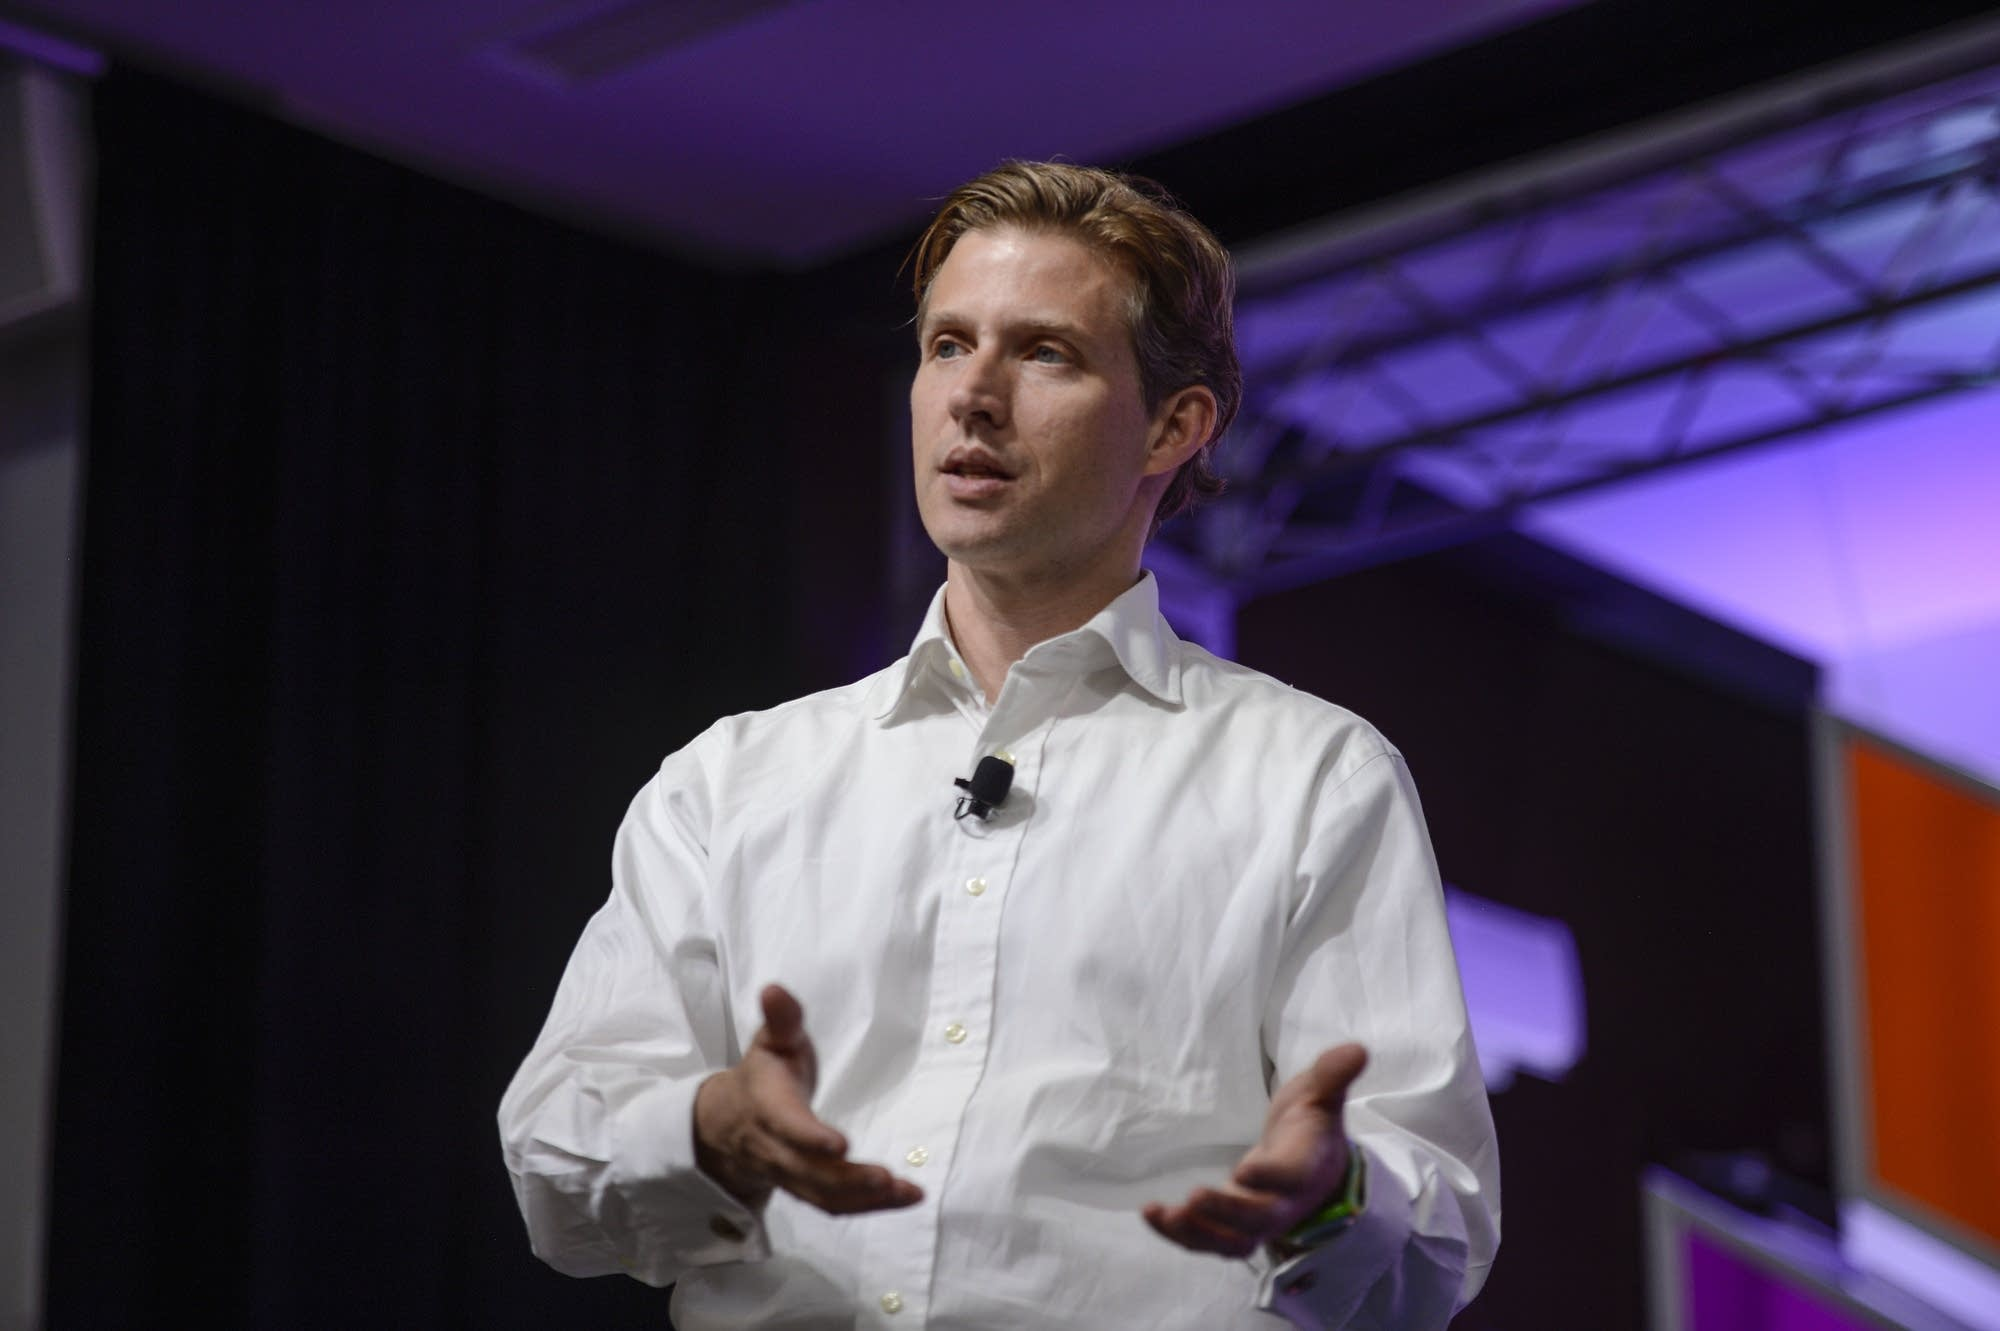 Alec Ross spoke at the Aspen Ideas Festival.